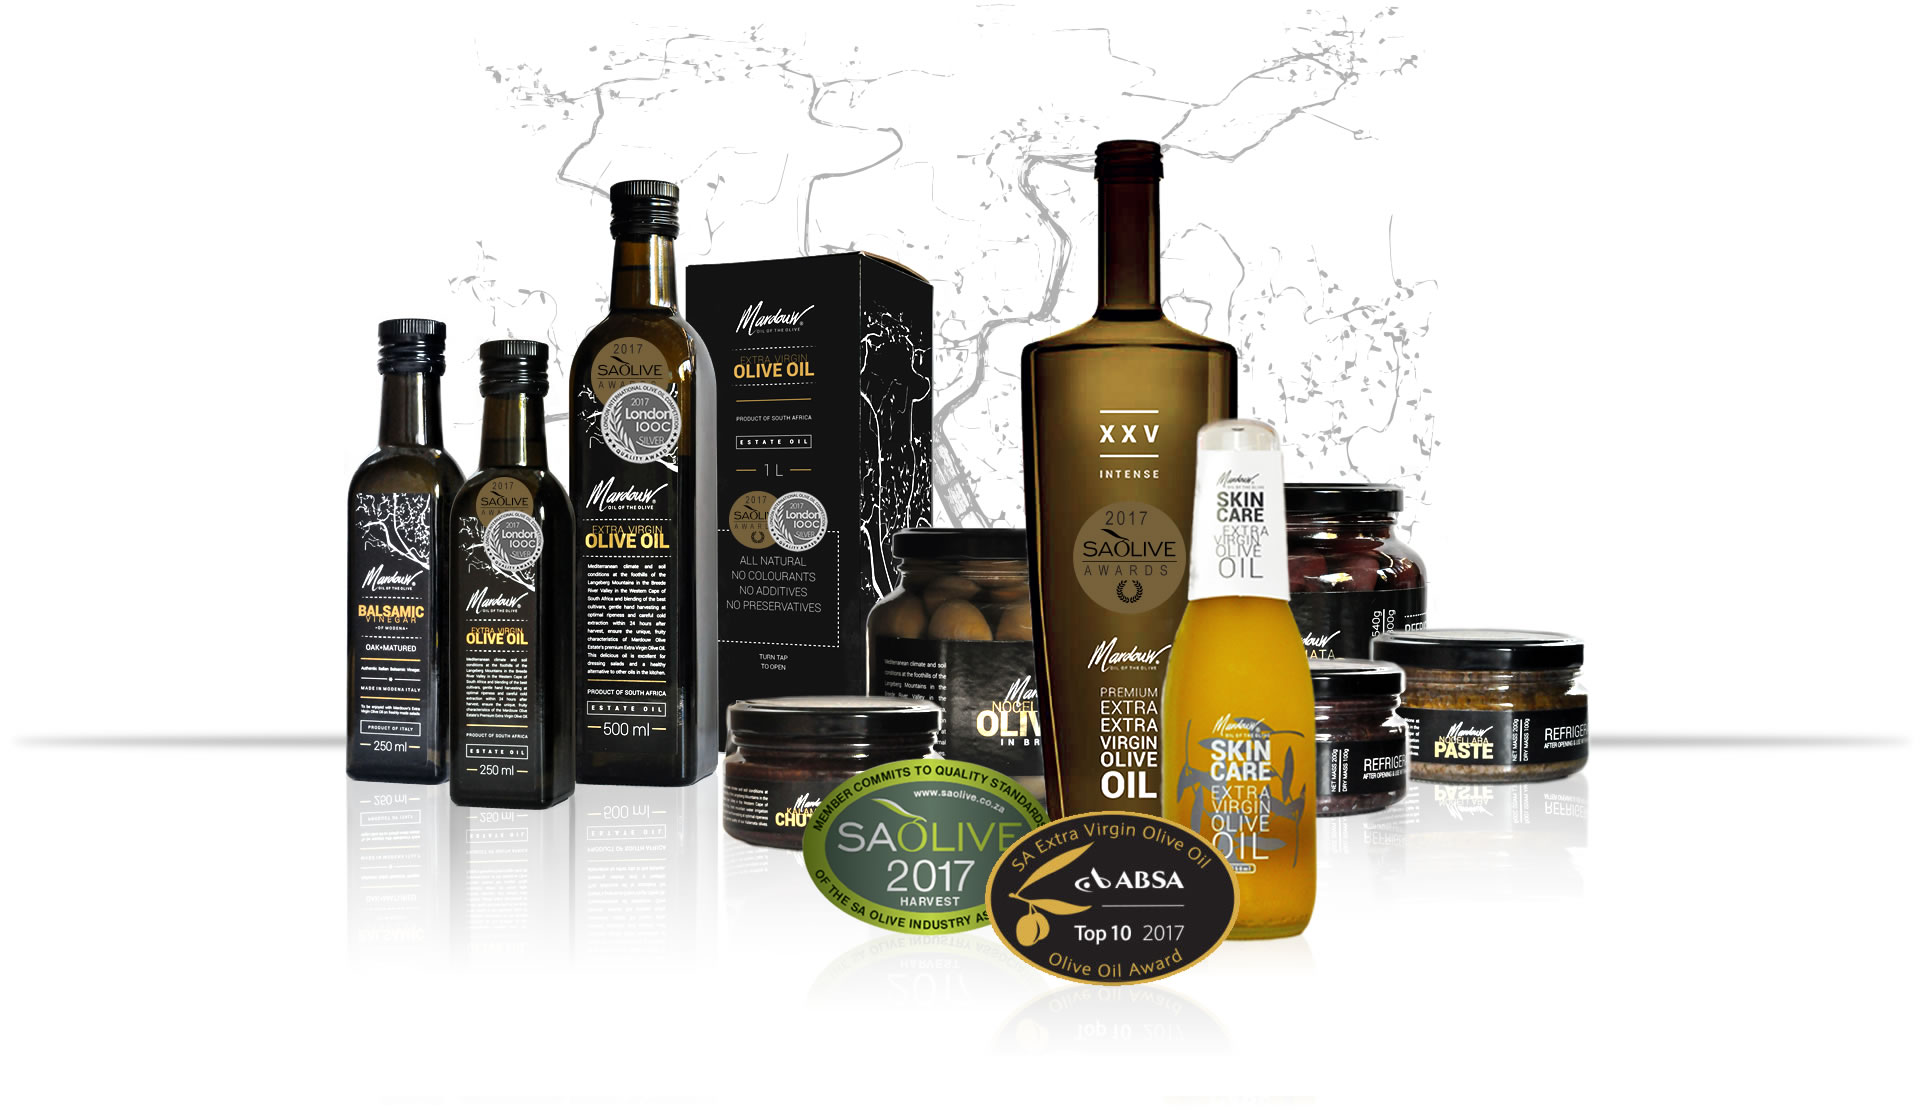 South African Olive Oil South Africa